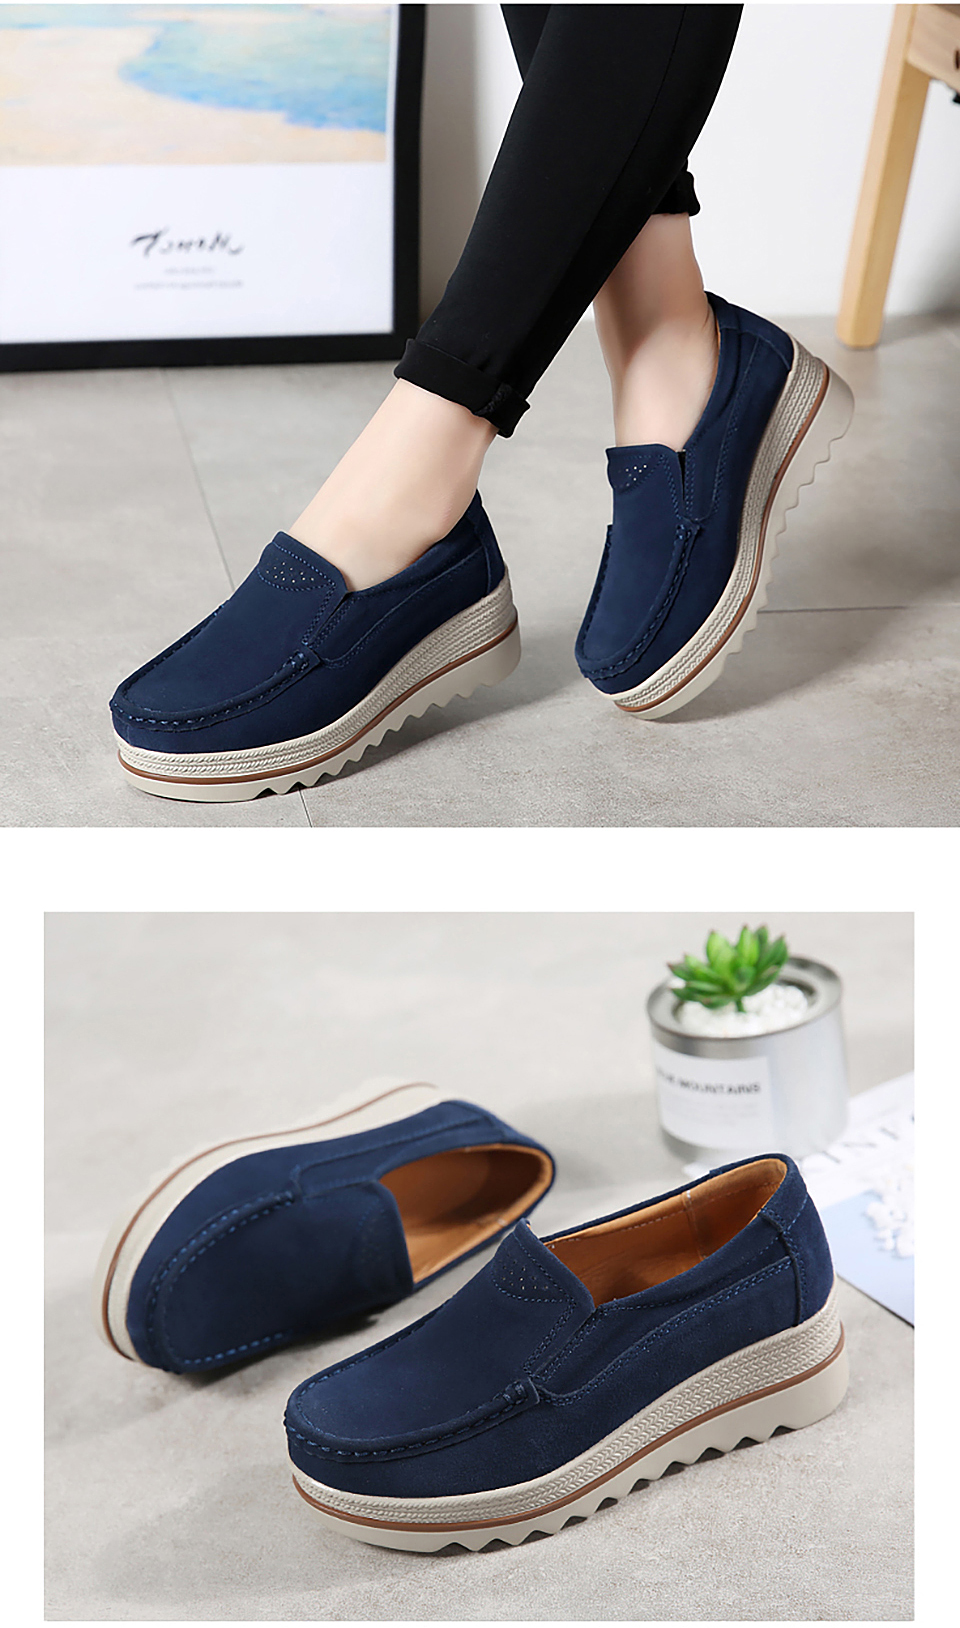 HTB136dMOb2pK1RjSZFsq6yNlXXaF 2019 Spring Women Flats Shoes Platform Sneakers Slip On Flats Leather Suede Ladies Loafers Moccasins Casual Shoes Women Creepers